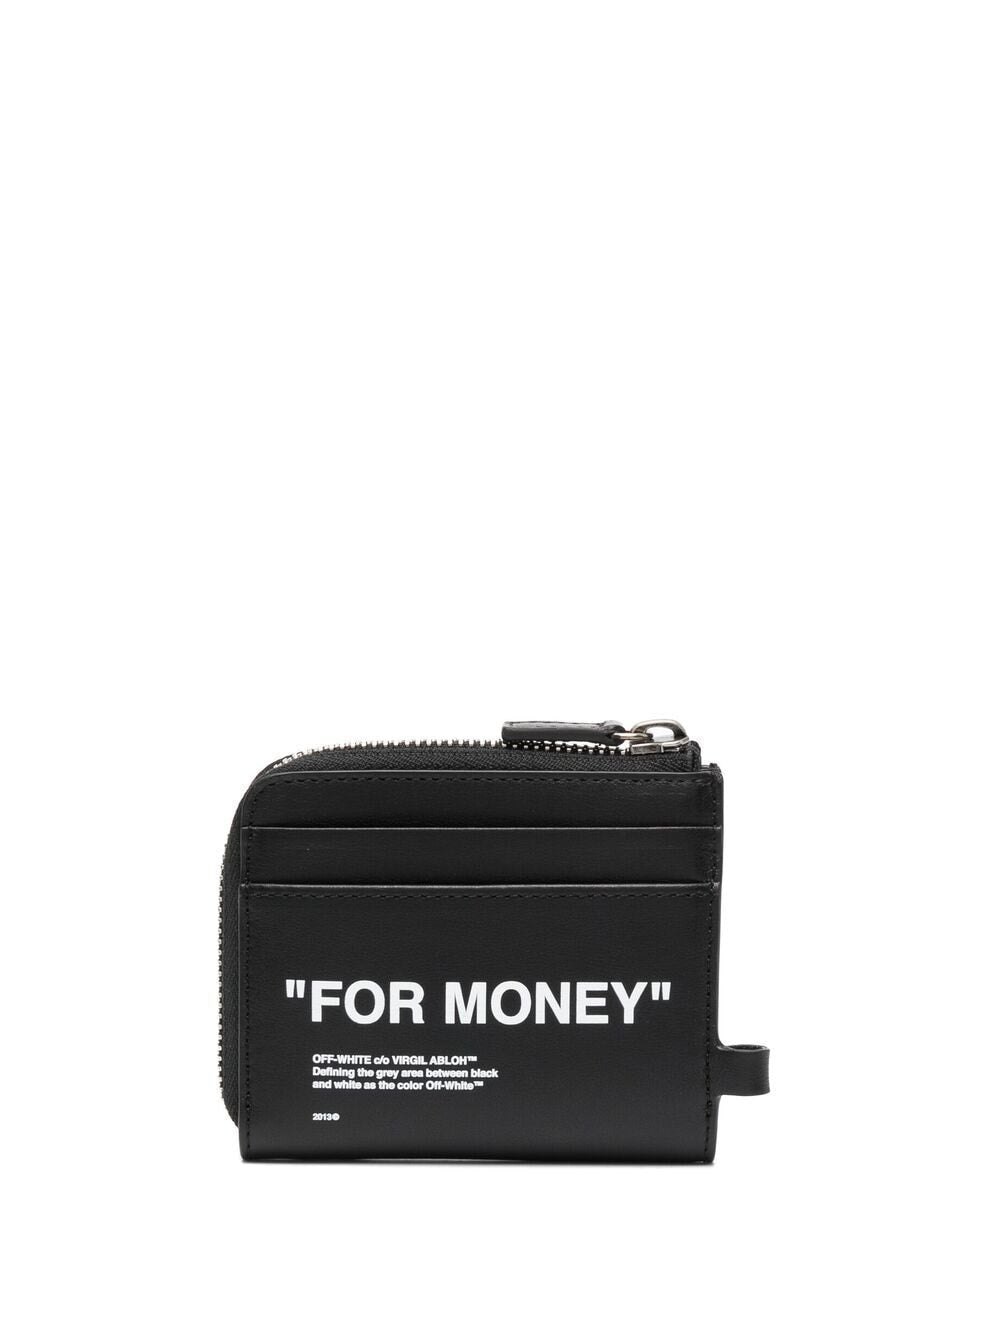 OFF-WHITE CALF SKIN QUITE CHAIN WALLET